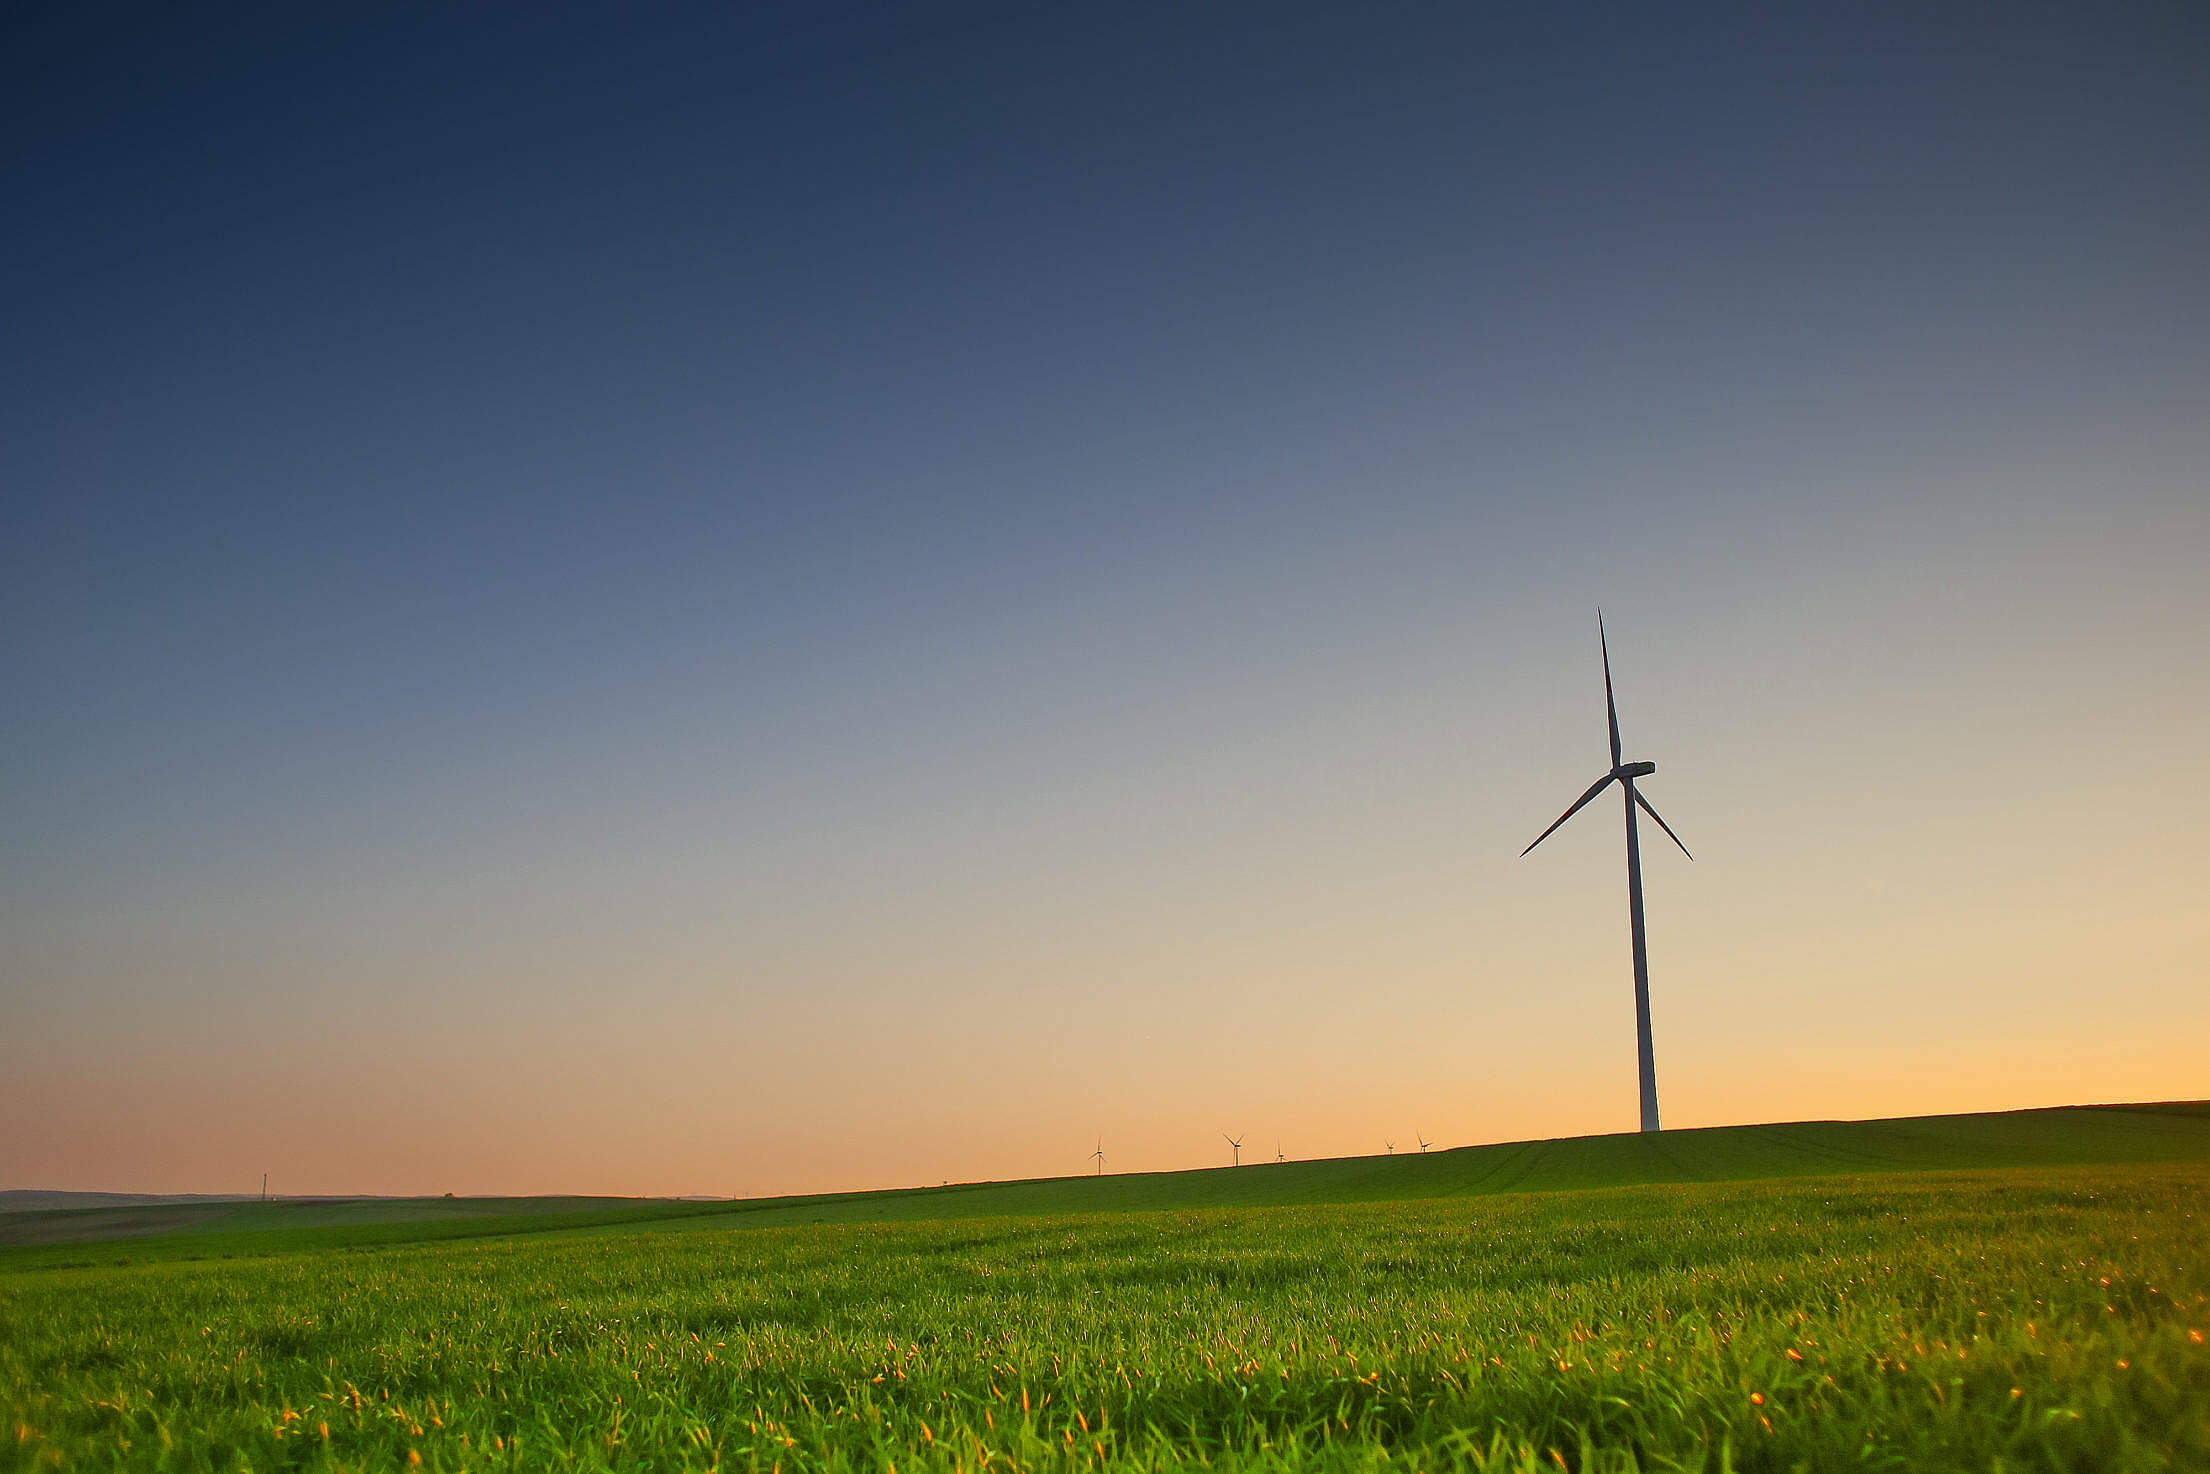 Evening Scenery with a Windmill Free Stock Photo